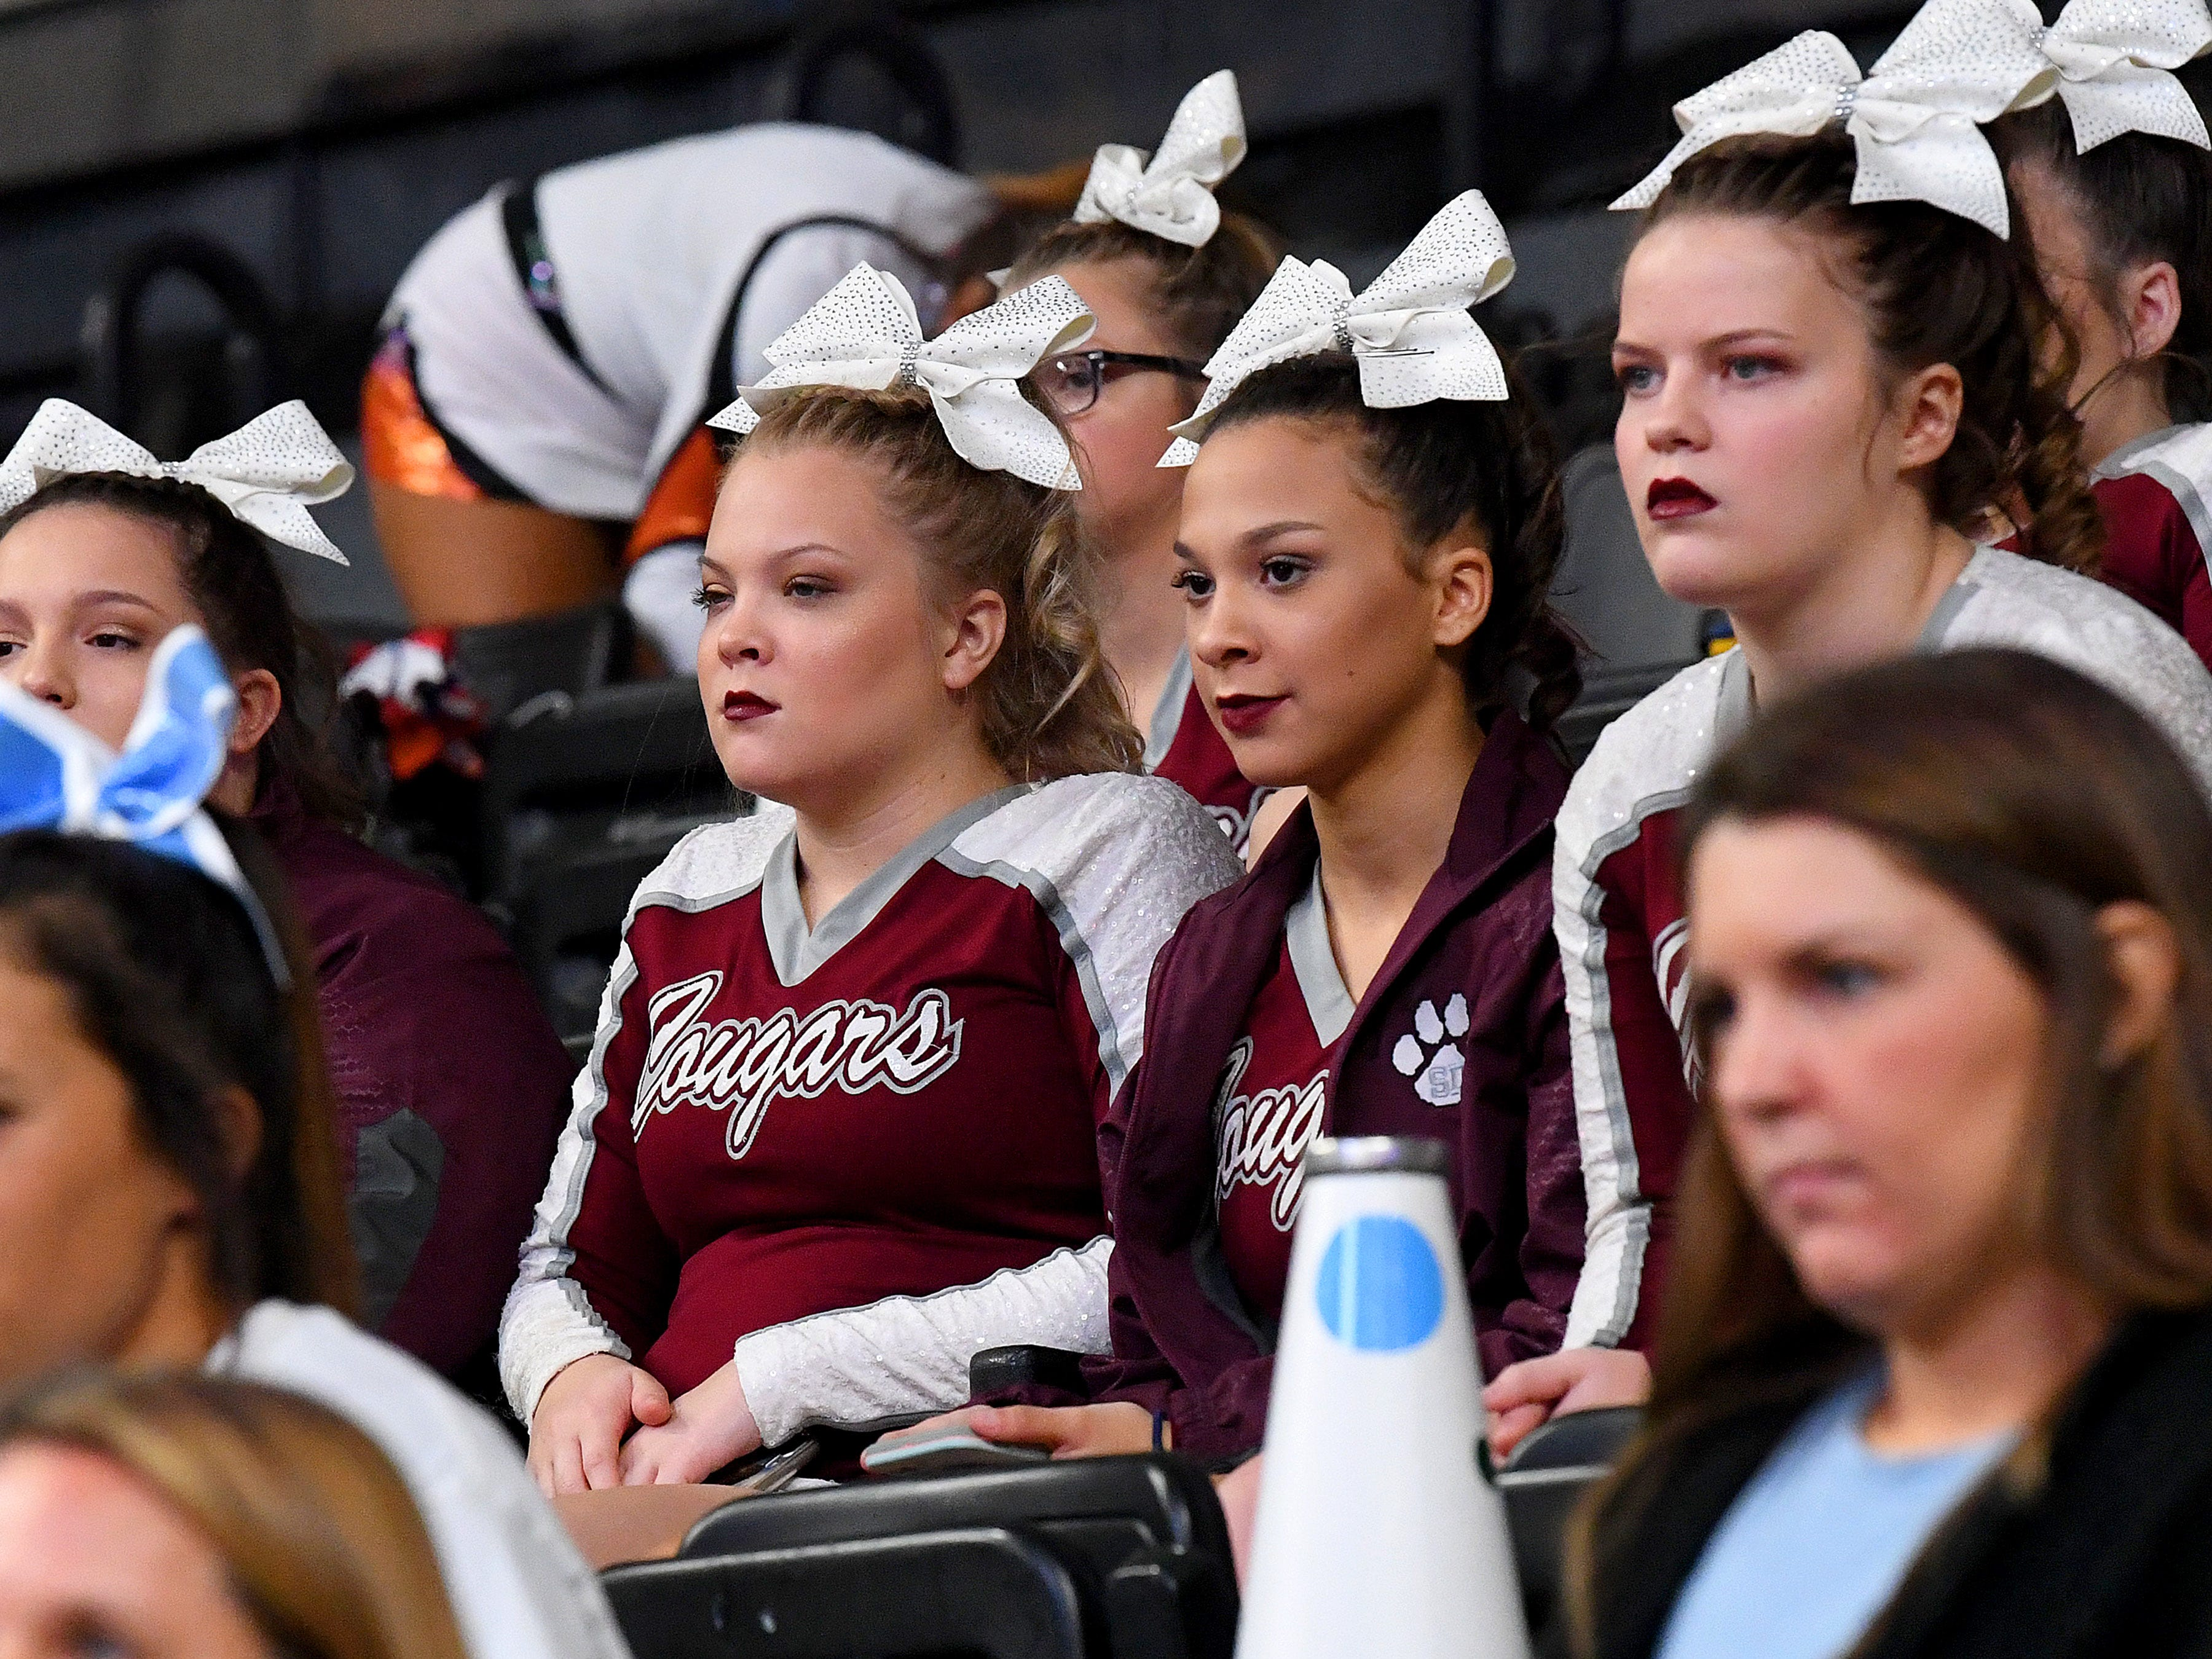 Stuarts Draft cheerleaders watch as another team competes down on the floor as they wait for their turn in the first round of the VHSL Competition Cheer Championships in Richmond on Saturday, Nov. 3, 2018.